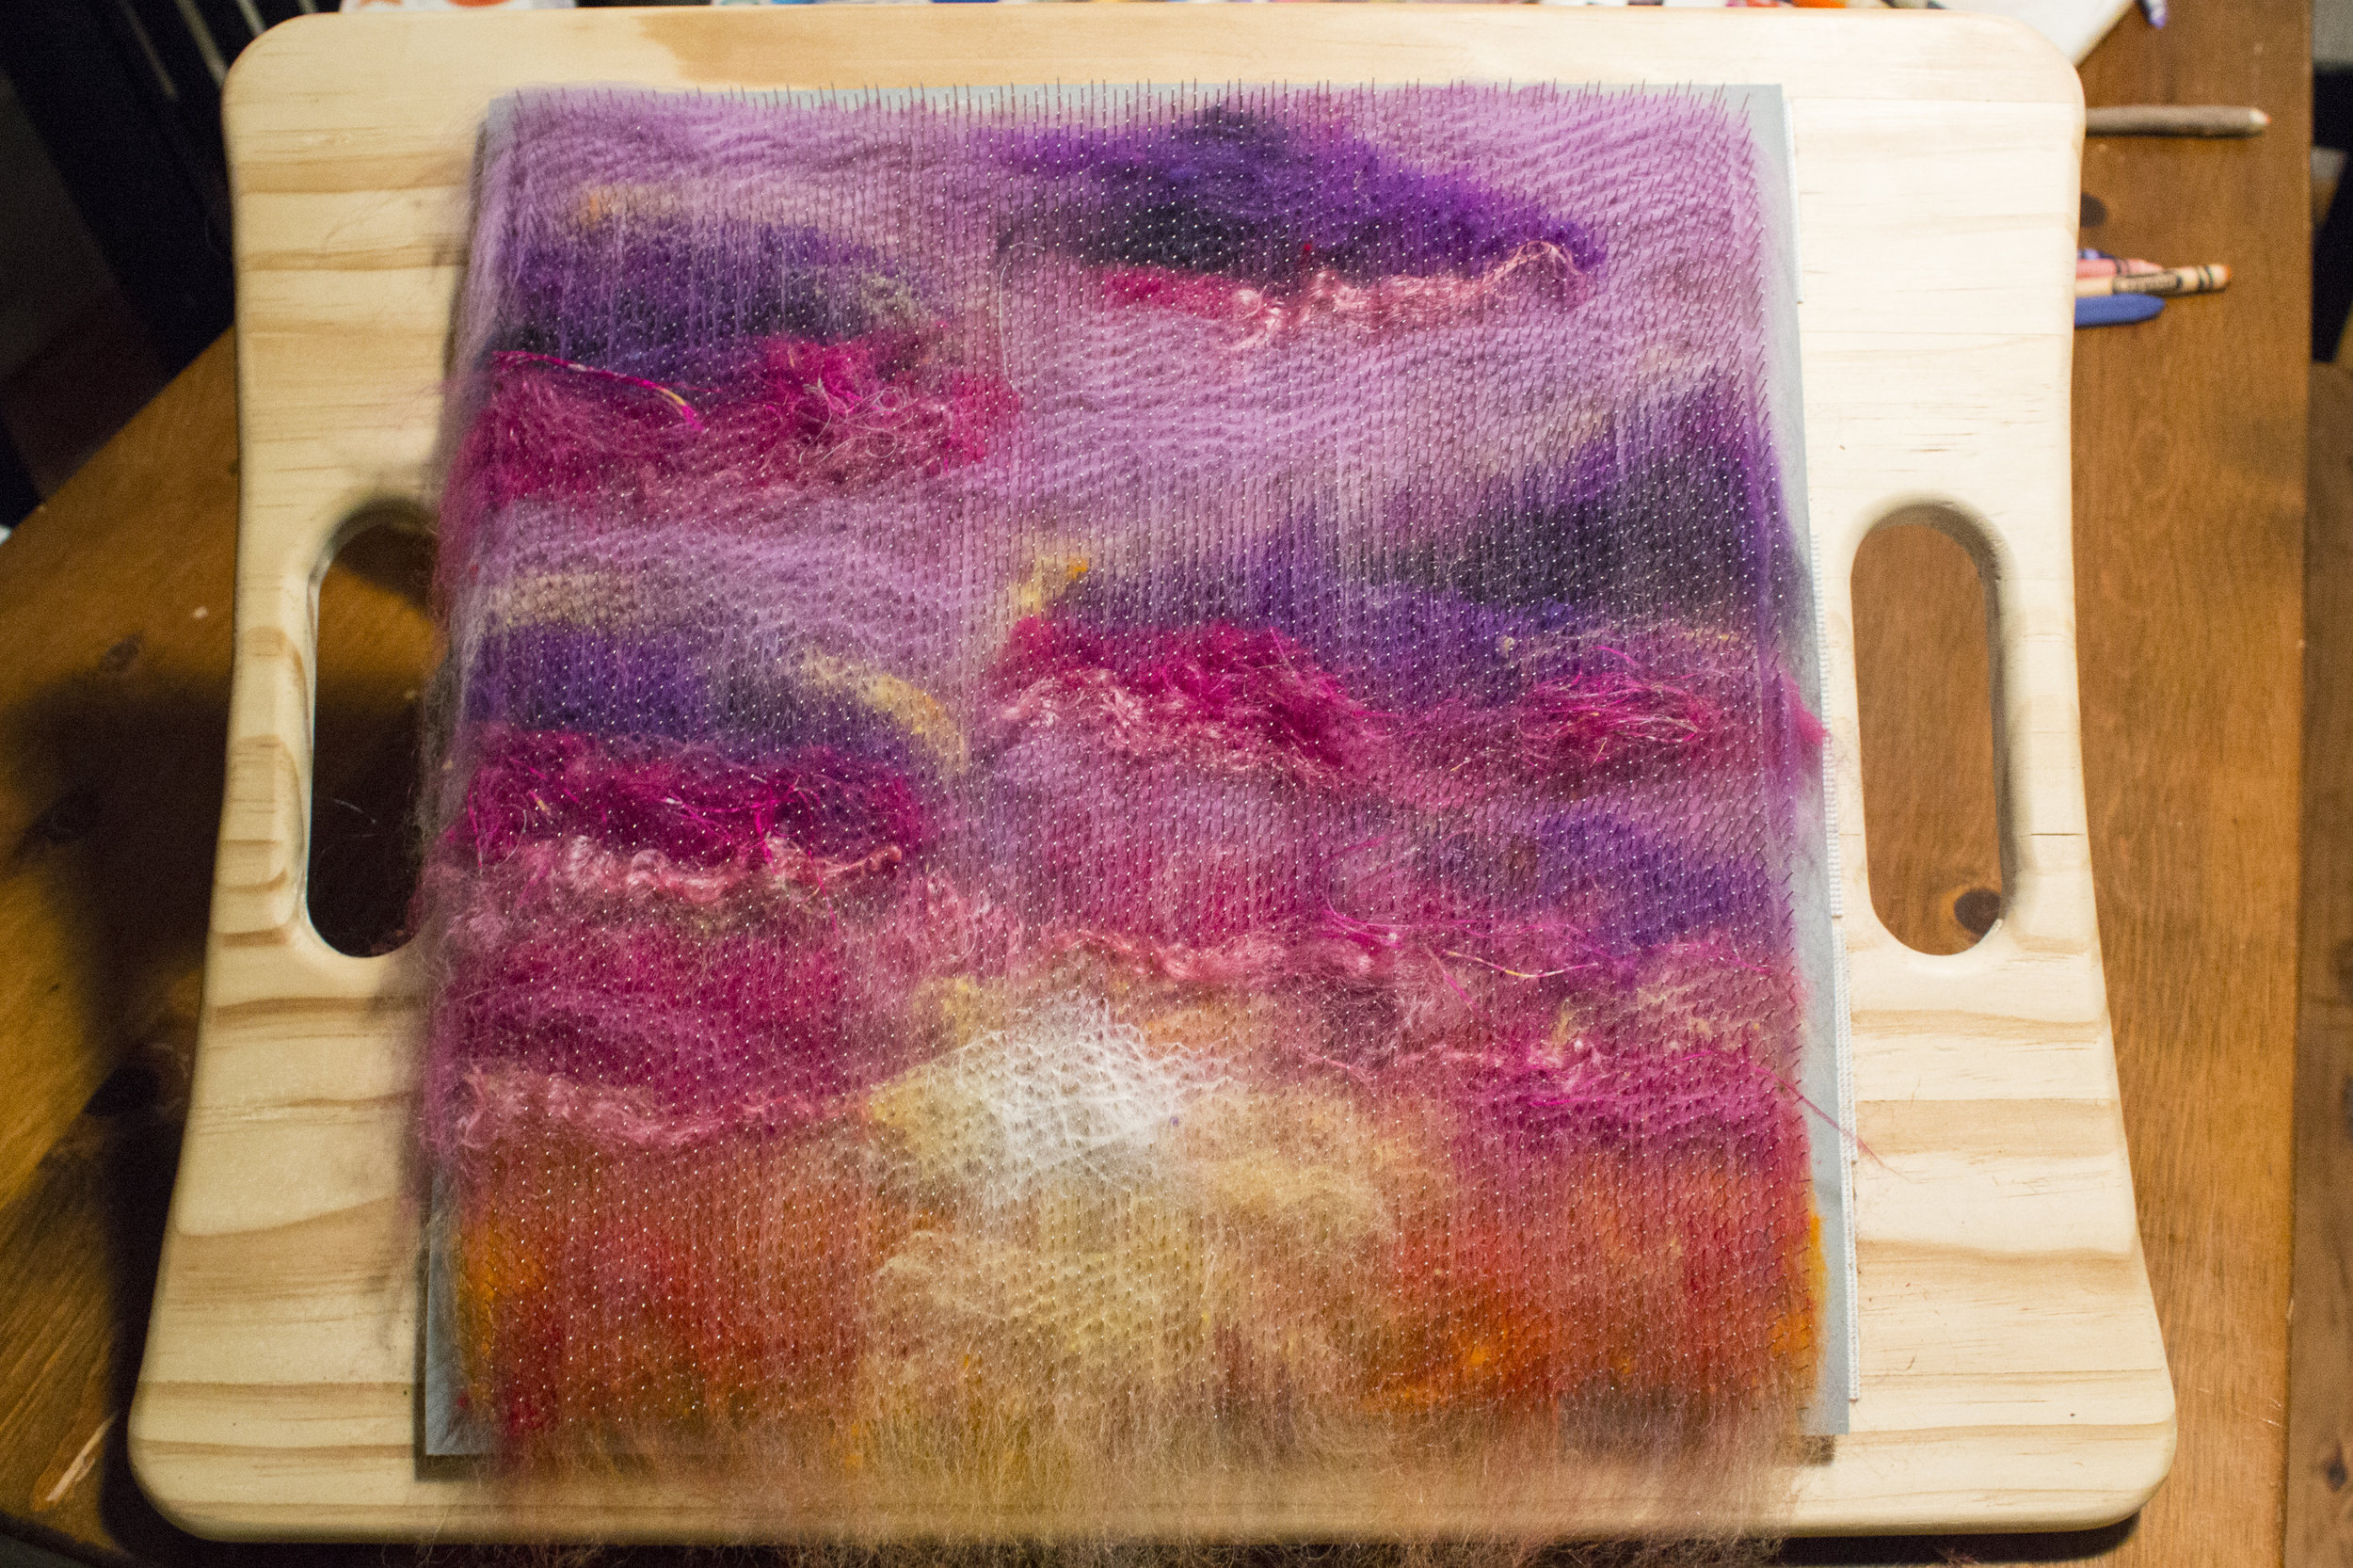 """Make sure you have a fairly even thickness across the board. You don't want gaps, and it's easier to end up with gaps using this """"wool-dabbing"""" method. I was careful to make sure there were overlapping layers of color."""